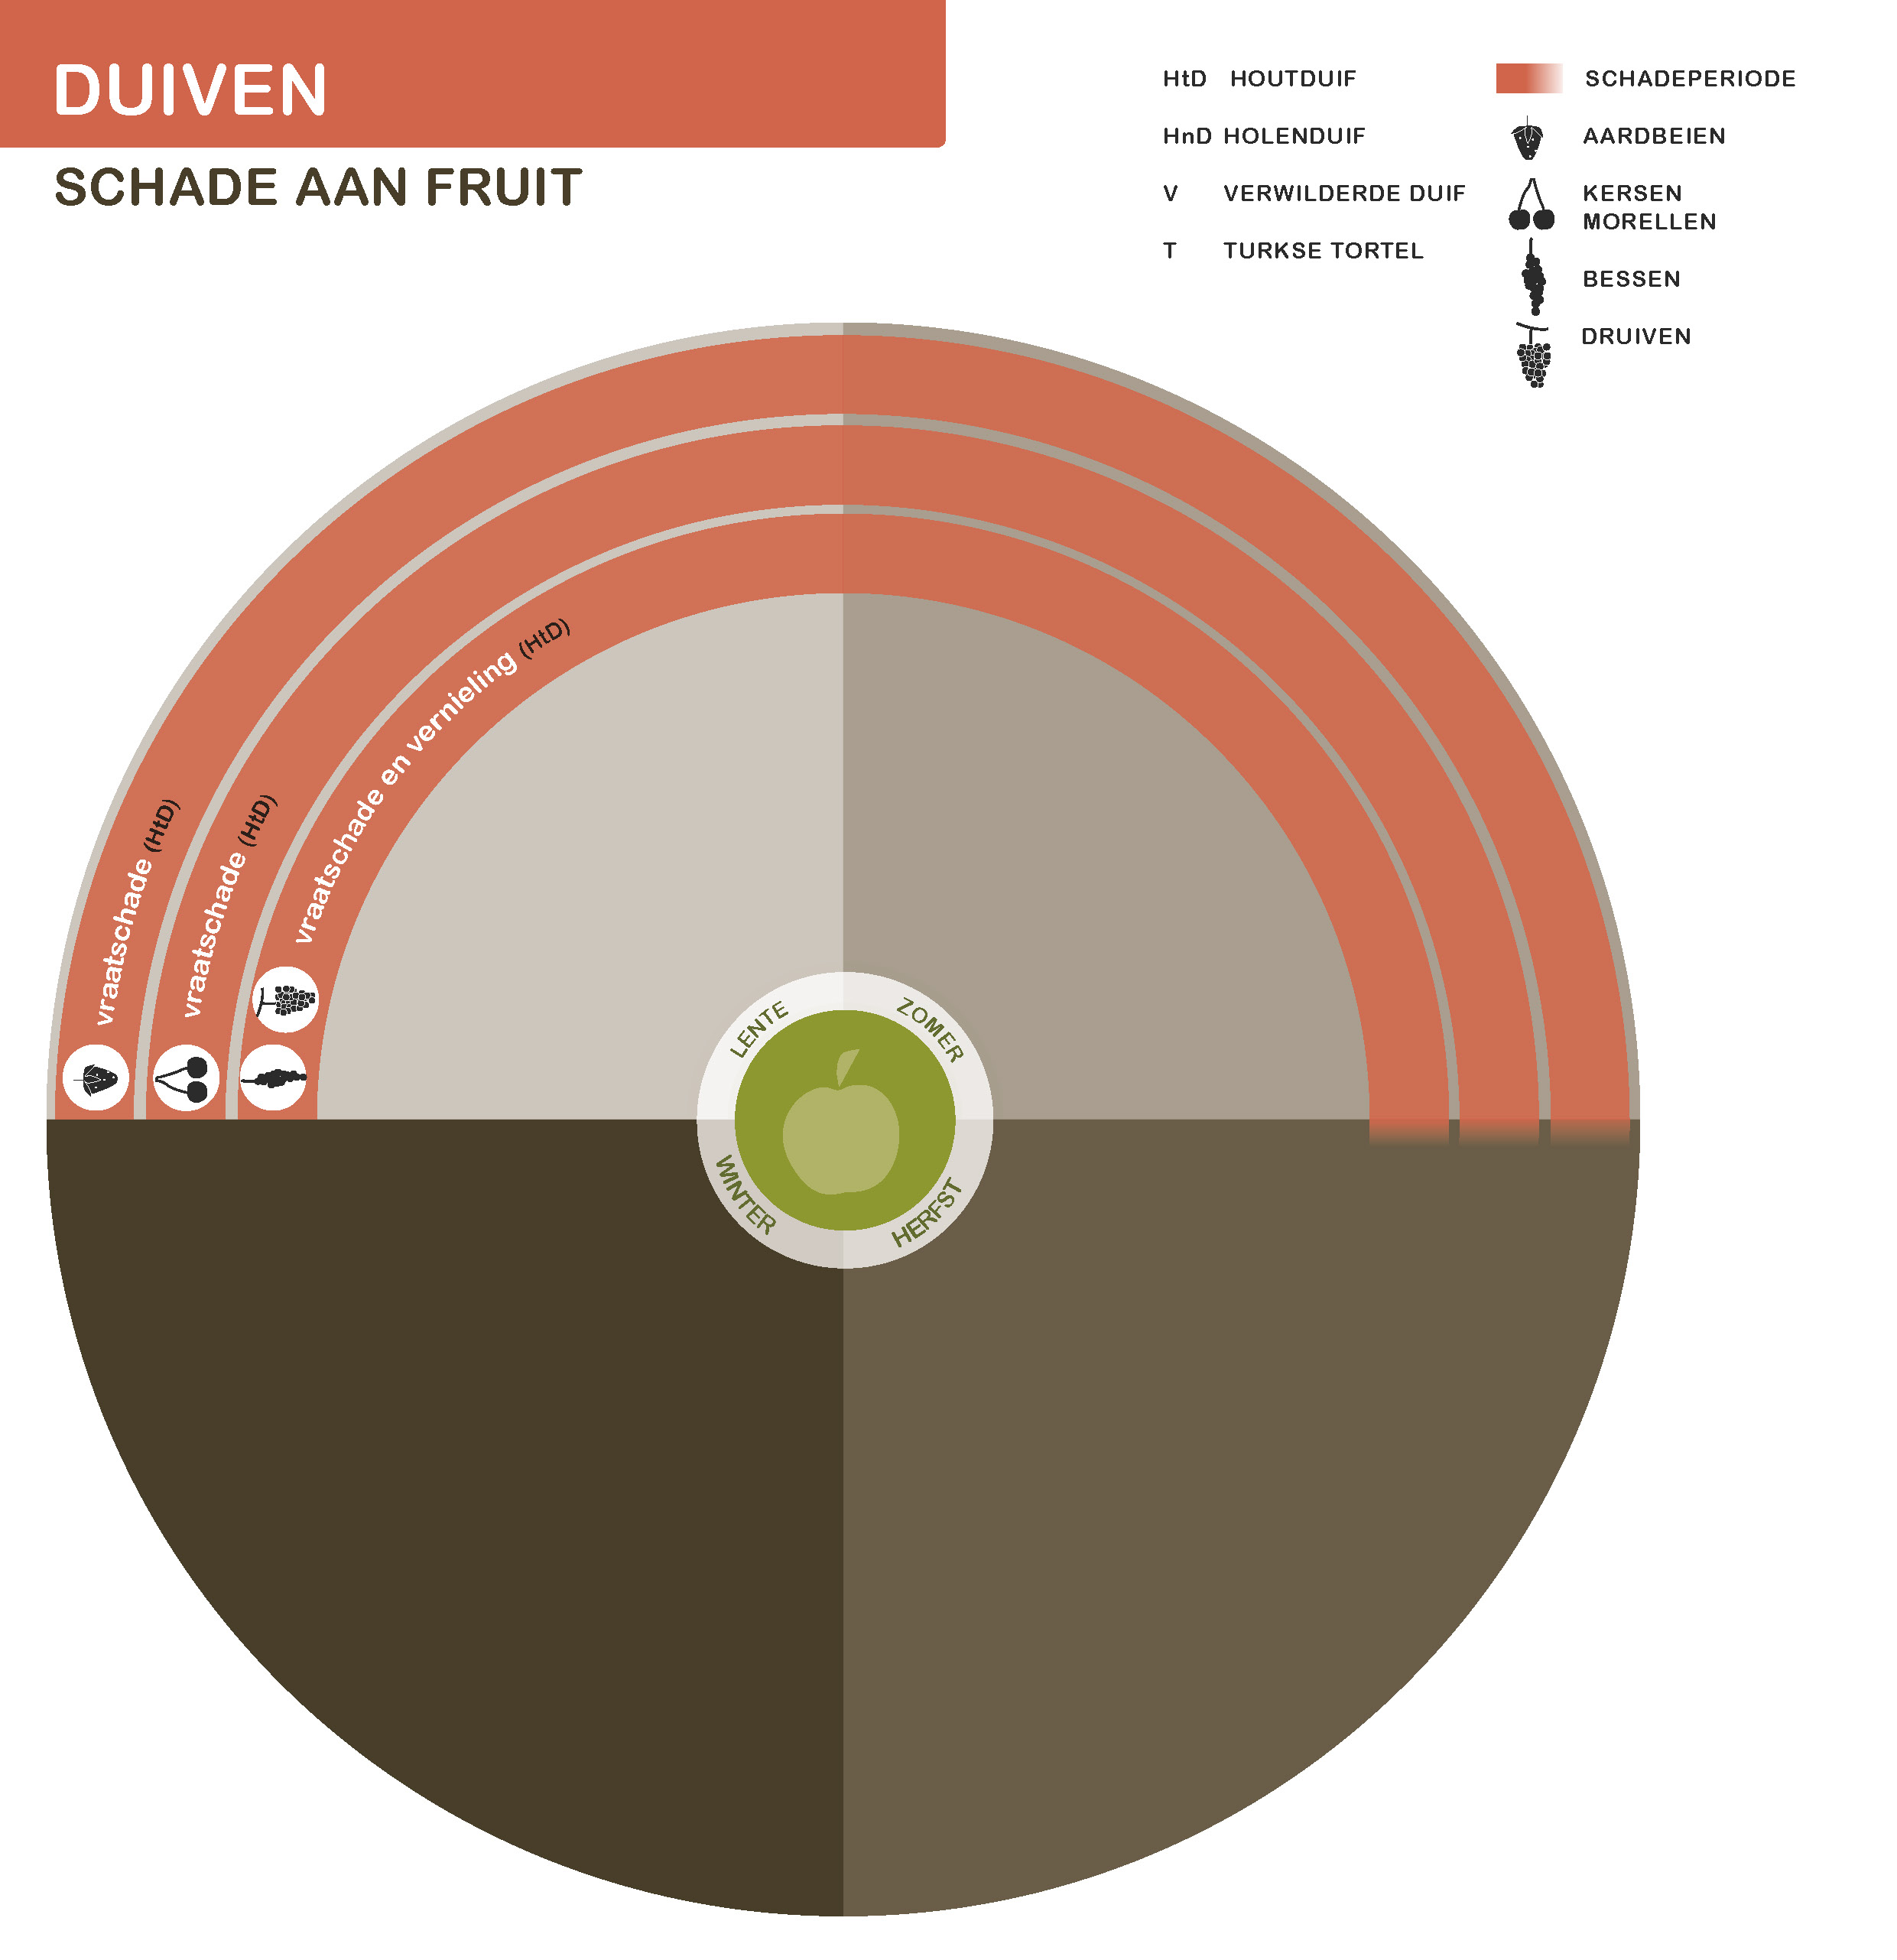 Duiven-fruit